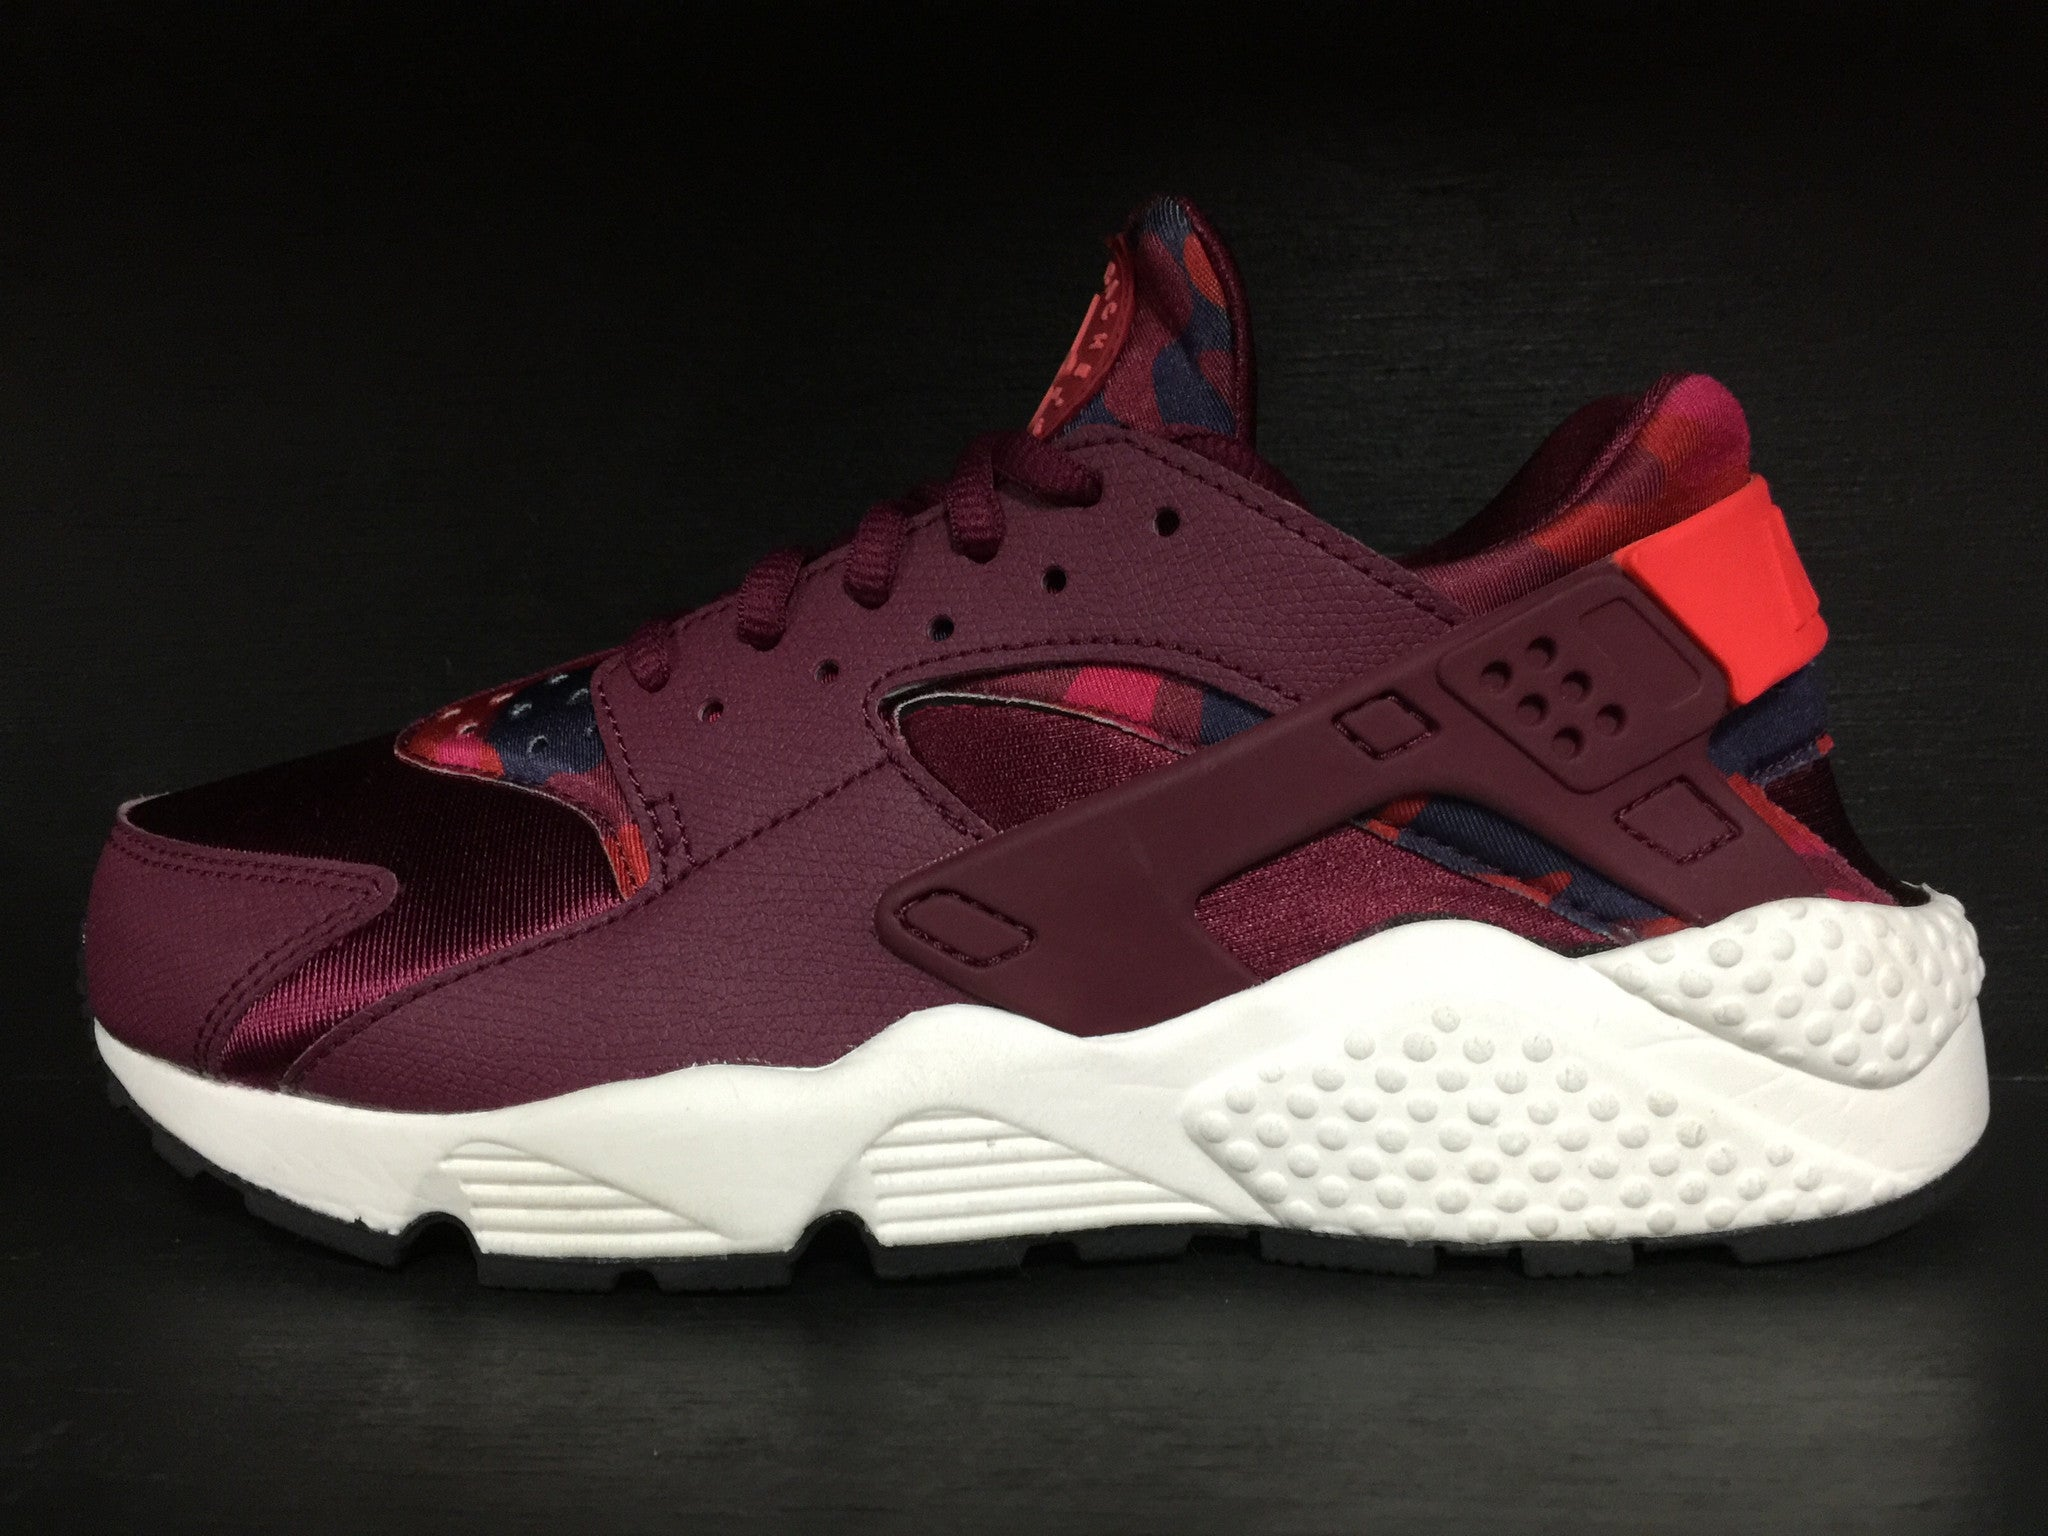 Wmns Air Huarache Run Print 'Deep Garnet'